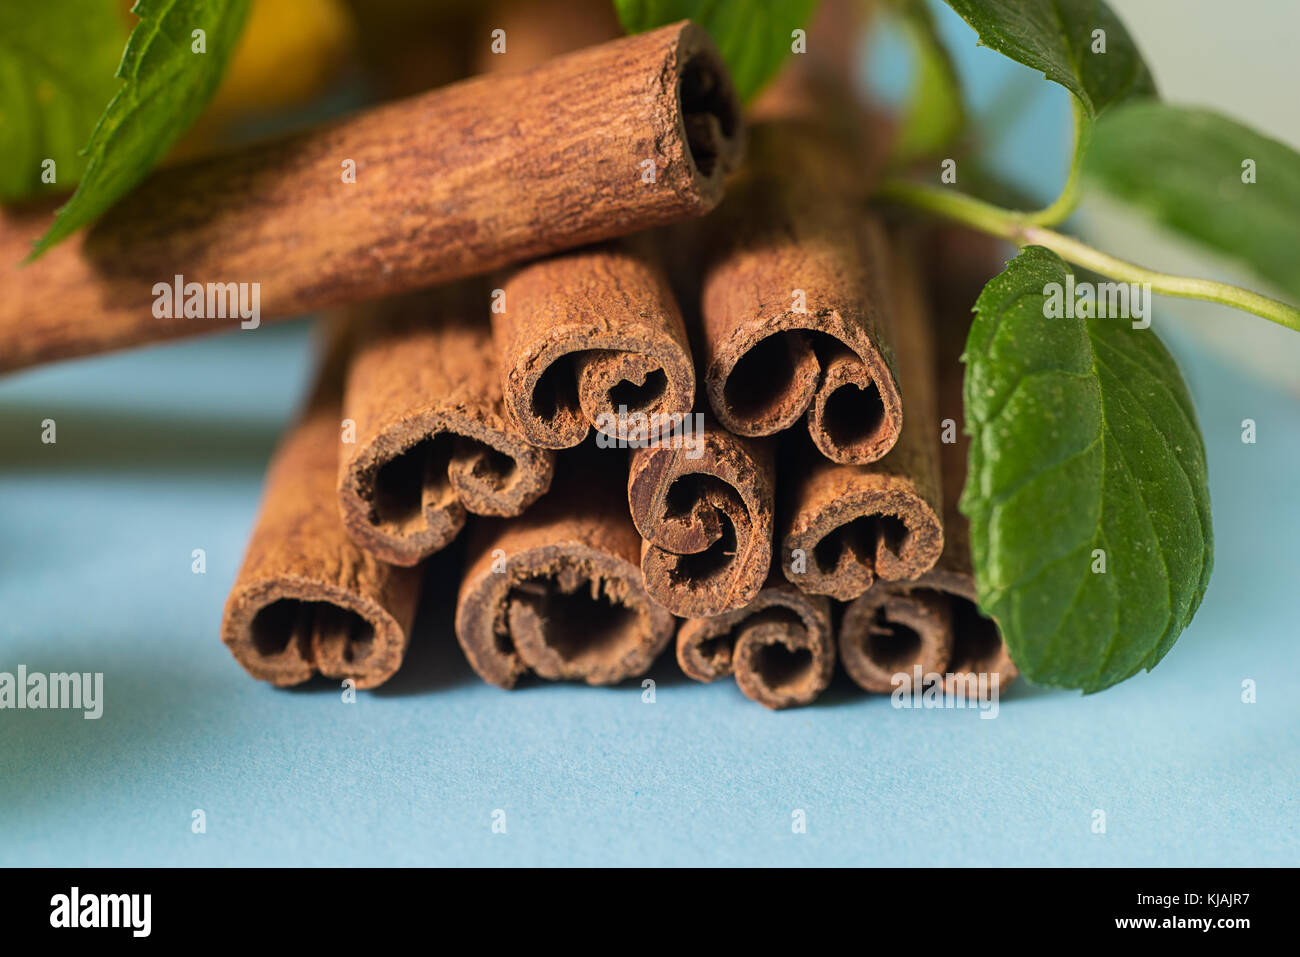 Sticks of cinnamon with mint leaves - Stock Image